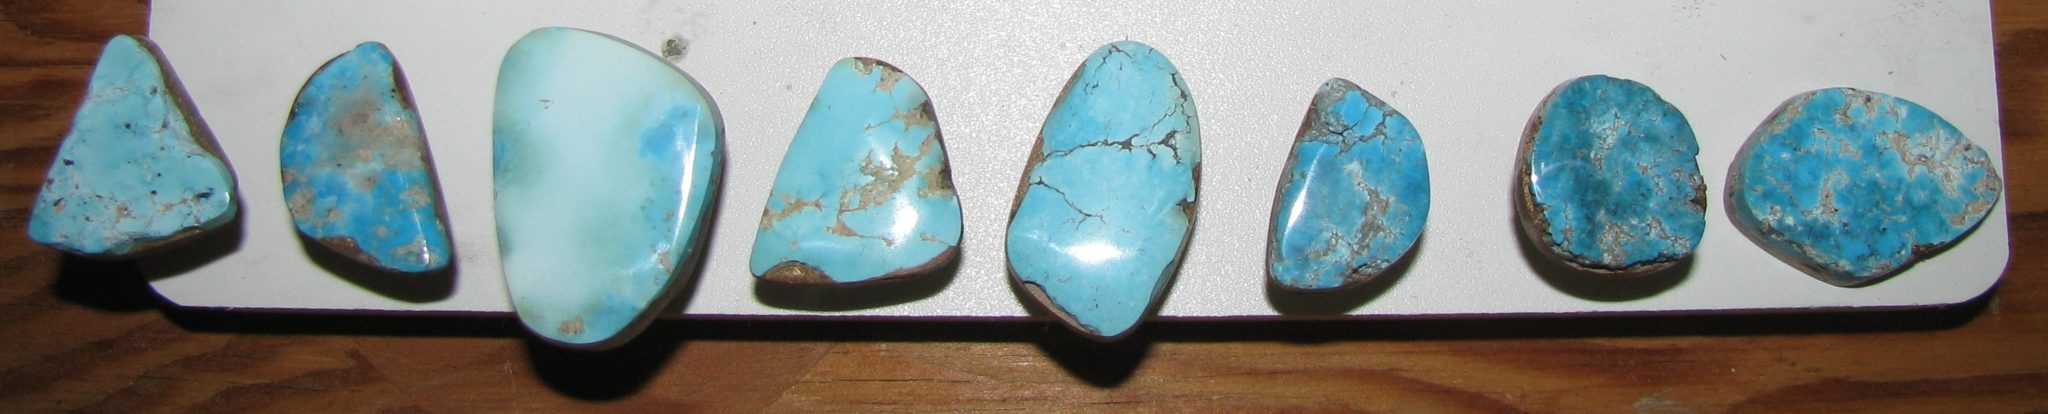 Same Morenci Turquoise stones featured above...only polished